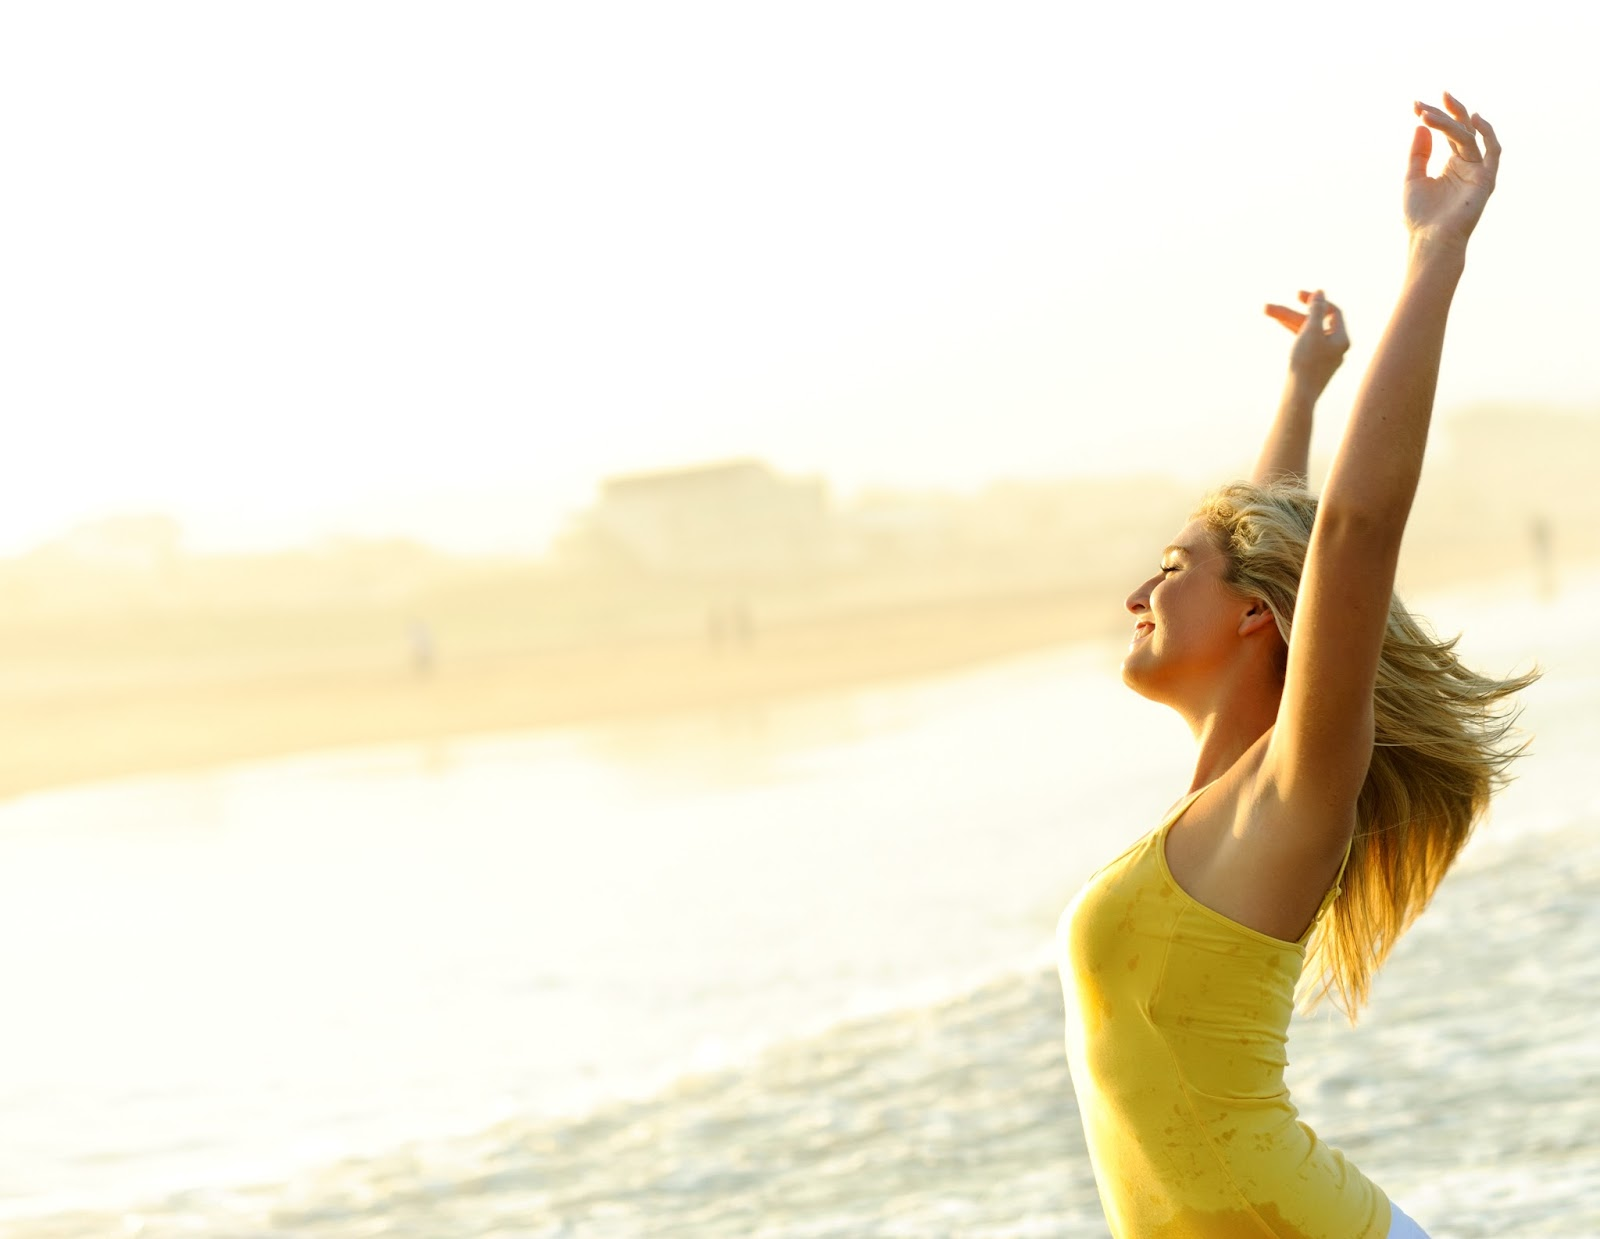 Get the ultimate beach body by working out hard enough and burning fat.